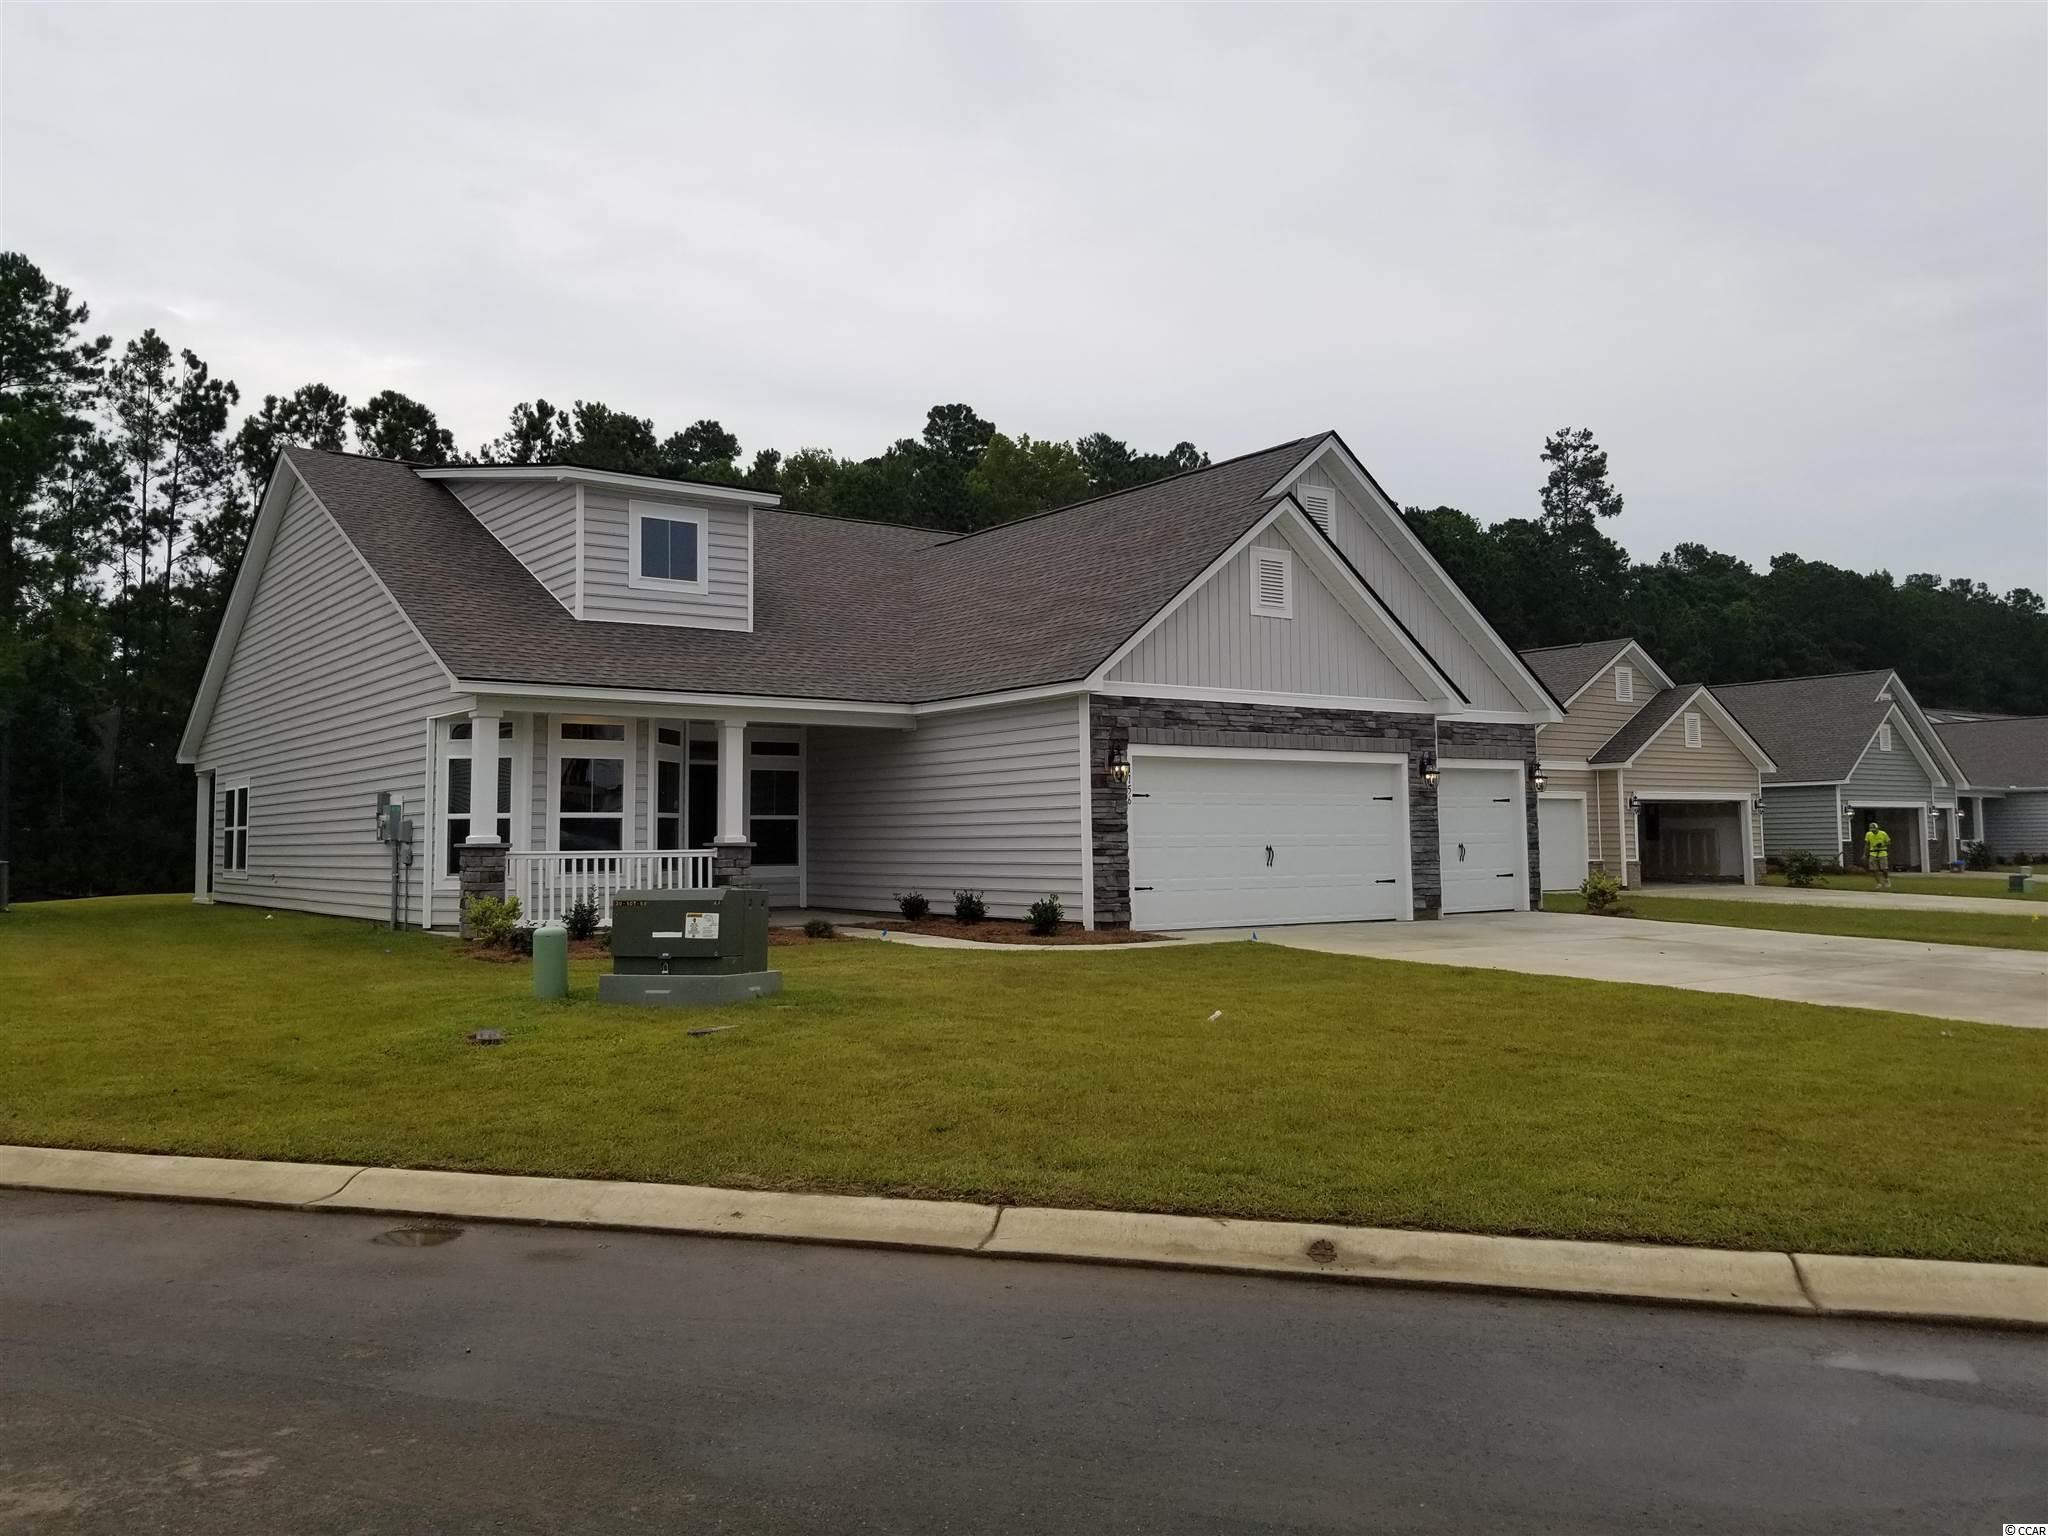 """This home will be MOVE IN READY Mid-July 2021.  This Lexington plan has 3 car garage and is located on a beautiful large pond. It features an upgraded kitchen with huge island and breakfast nook which overlooks the open great room and a separate office/flex room .  Included in this home is a Home Automation system, WIFI Certified, laminate floors, granite counters  42'""""staggered cabinets and GE stainless appliances. Forestbrook Estates is a natural gas community which will offer an amenity including pool, cabana and community garden.  Situated in the Forestbrook area of Myrtle Beach, you are literally minutes to the beaches, shopping, dining and theaters.     **Photos are of our Lexington model home and includes upgraded features."""